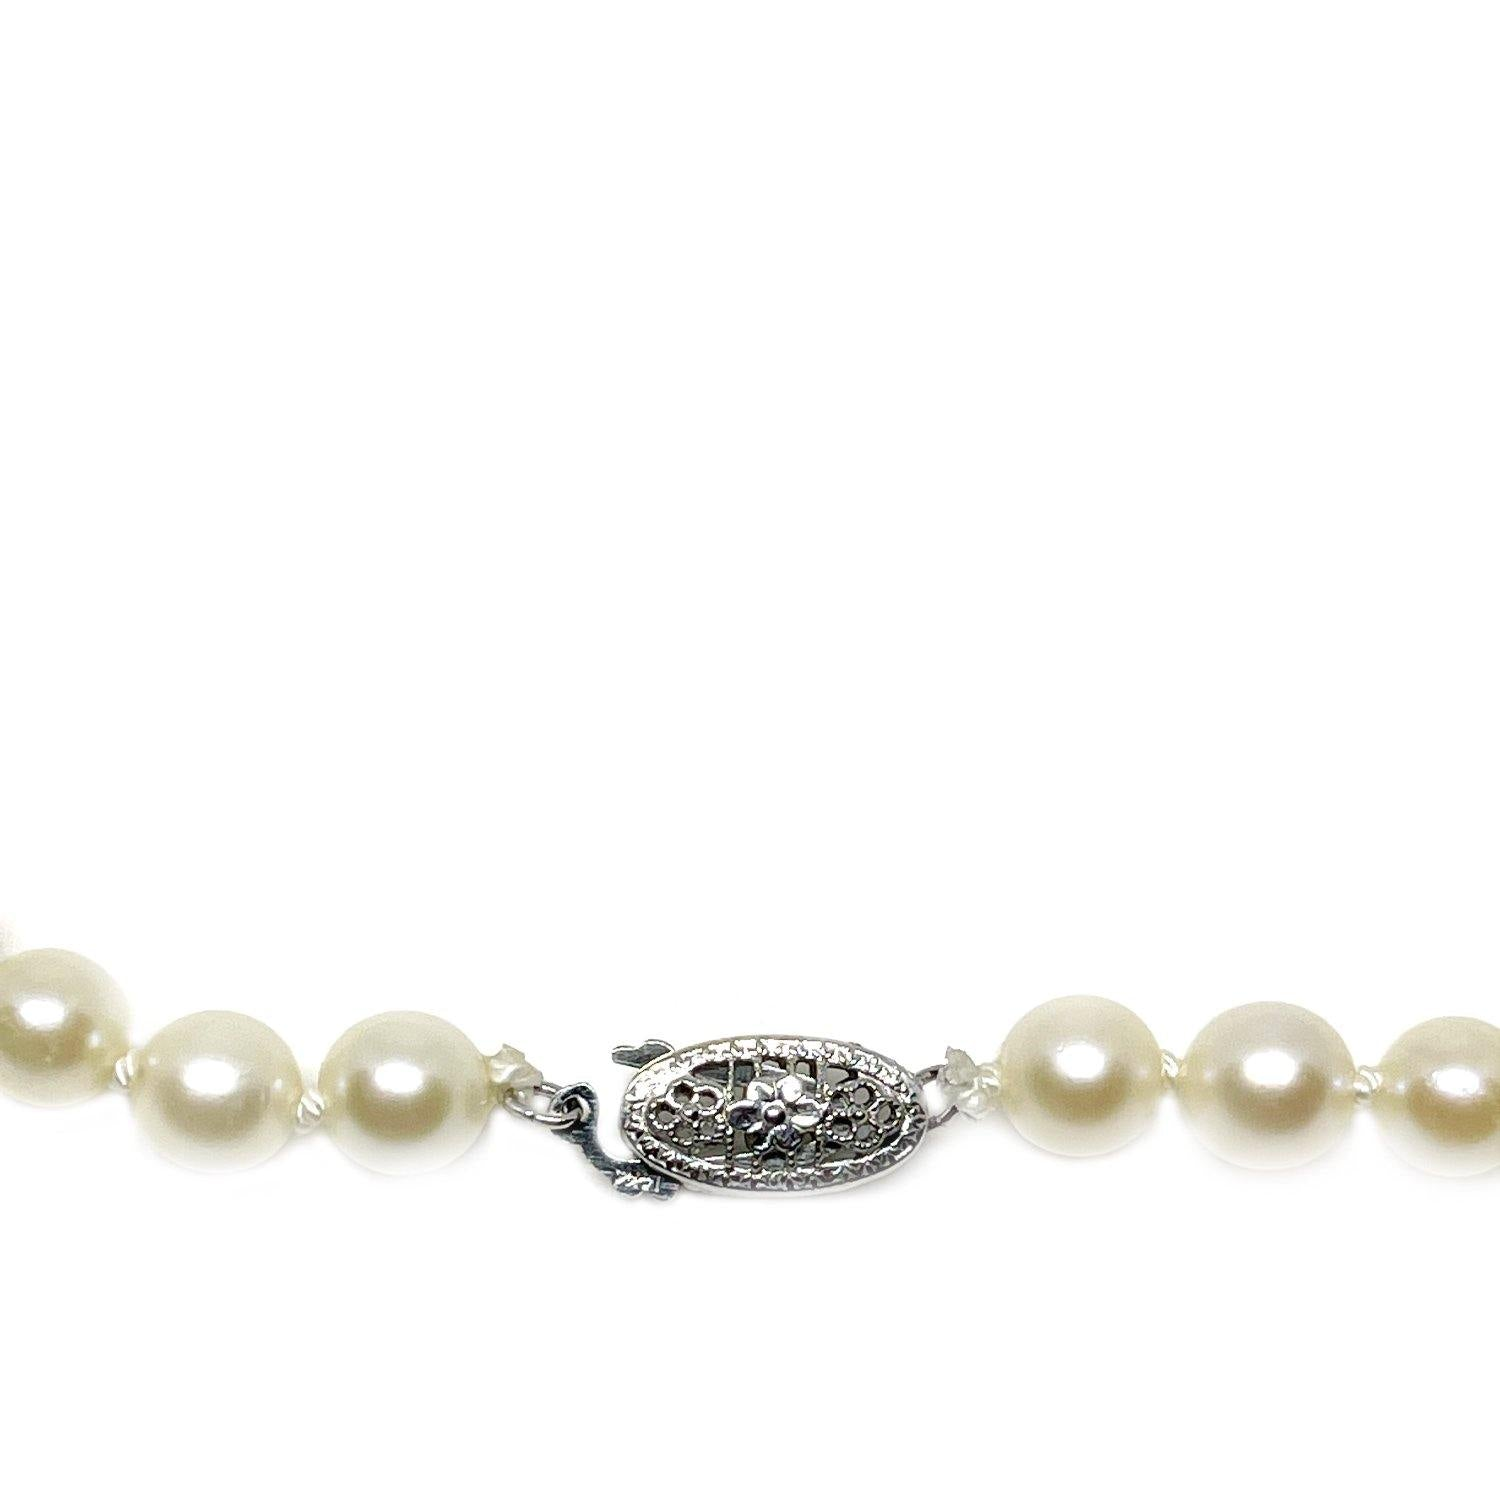 Graduated Blossom Japanese Saltwater Cultured Akoya Pearl Strand - 14K White Gold 15.50 Inch